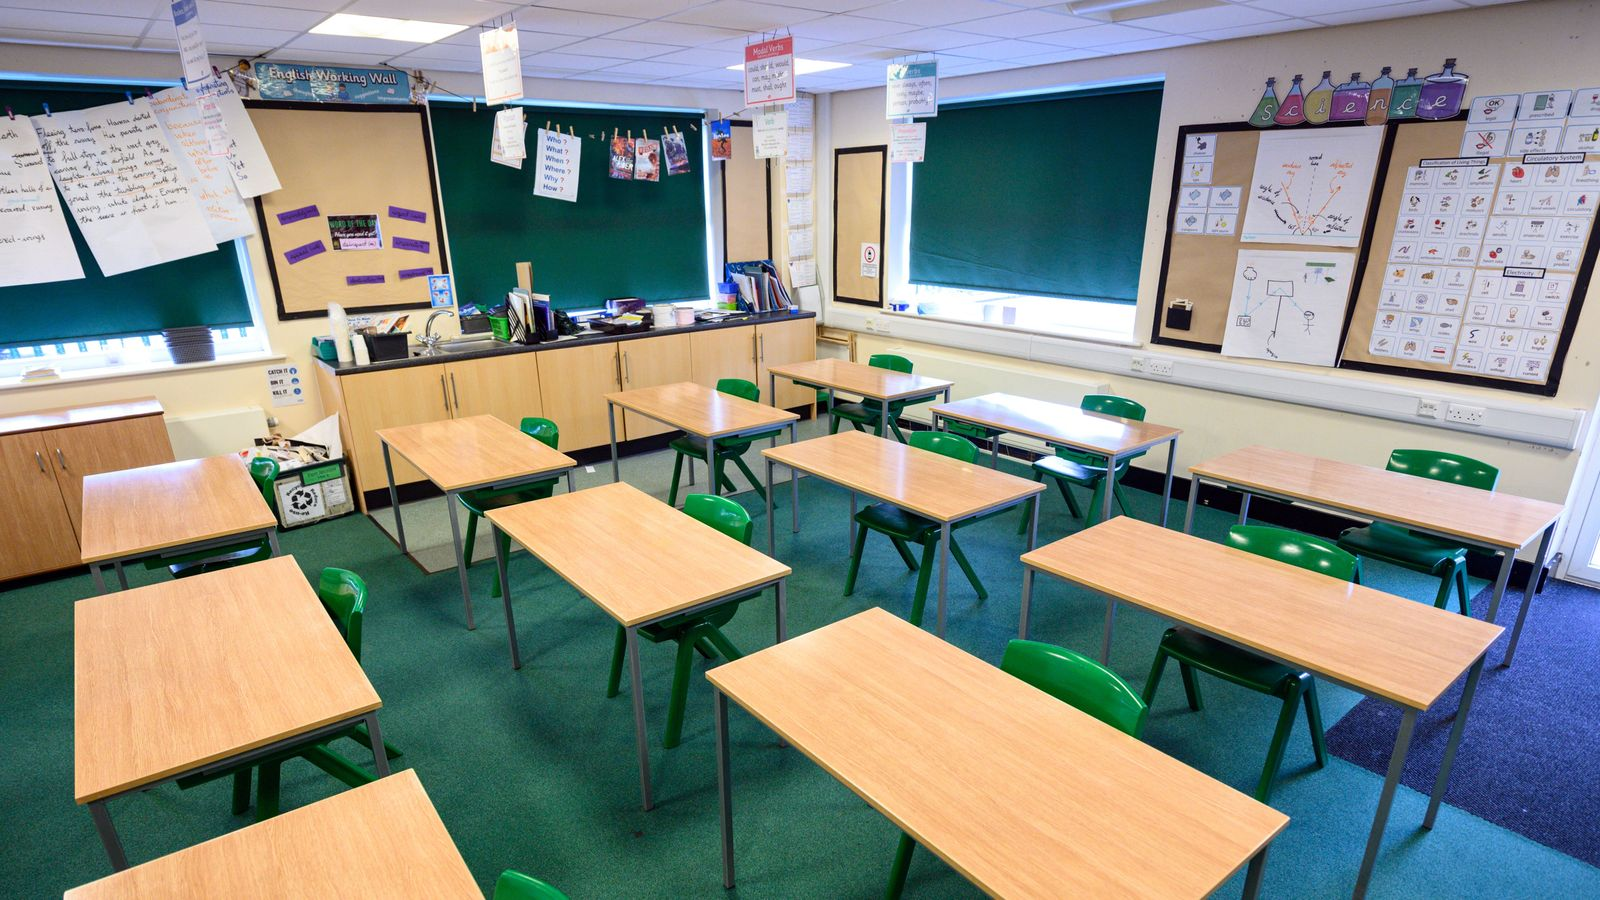 Coronavirus: Government says schools are safe and children will be back in September